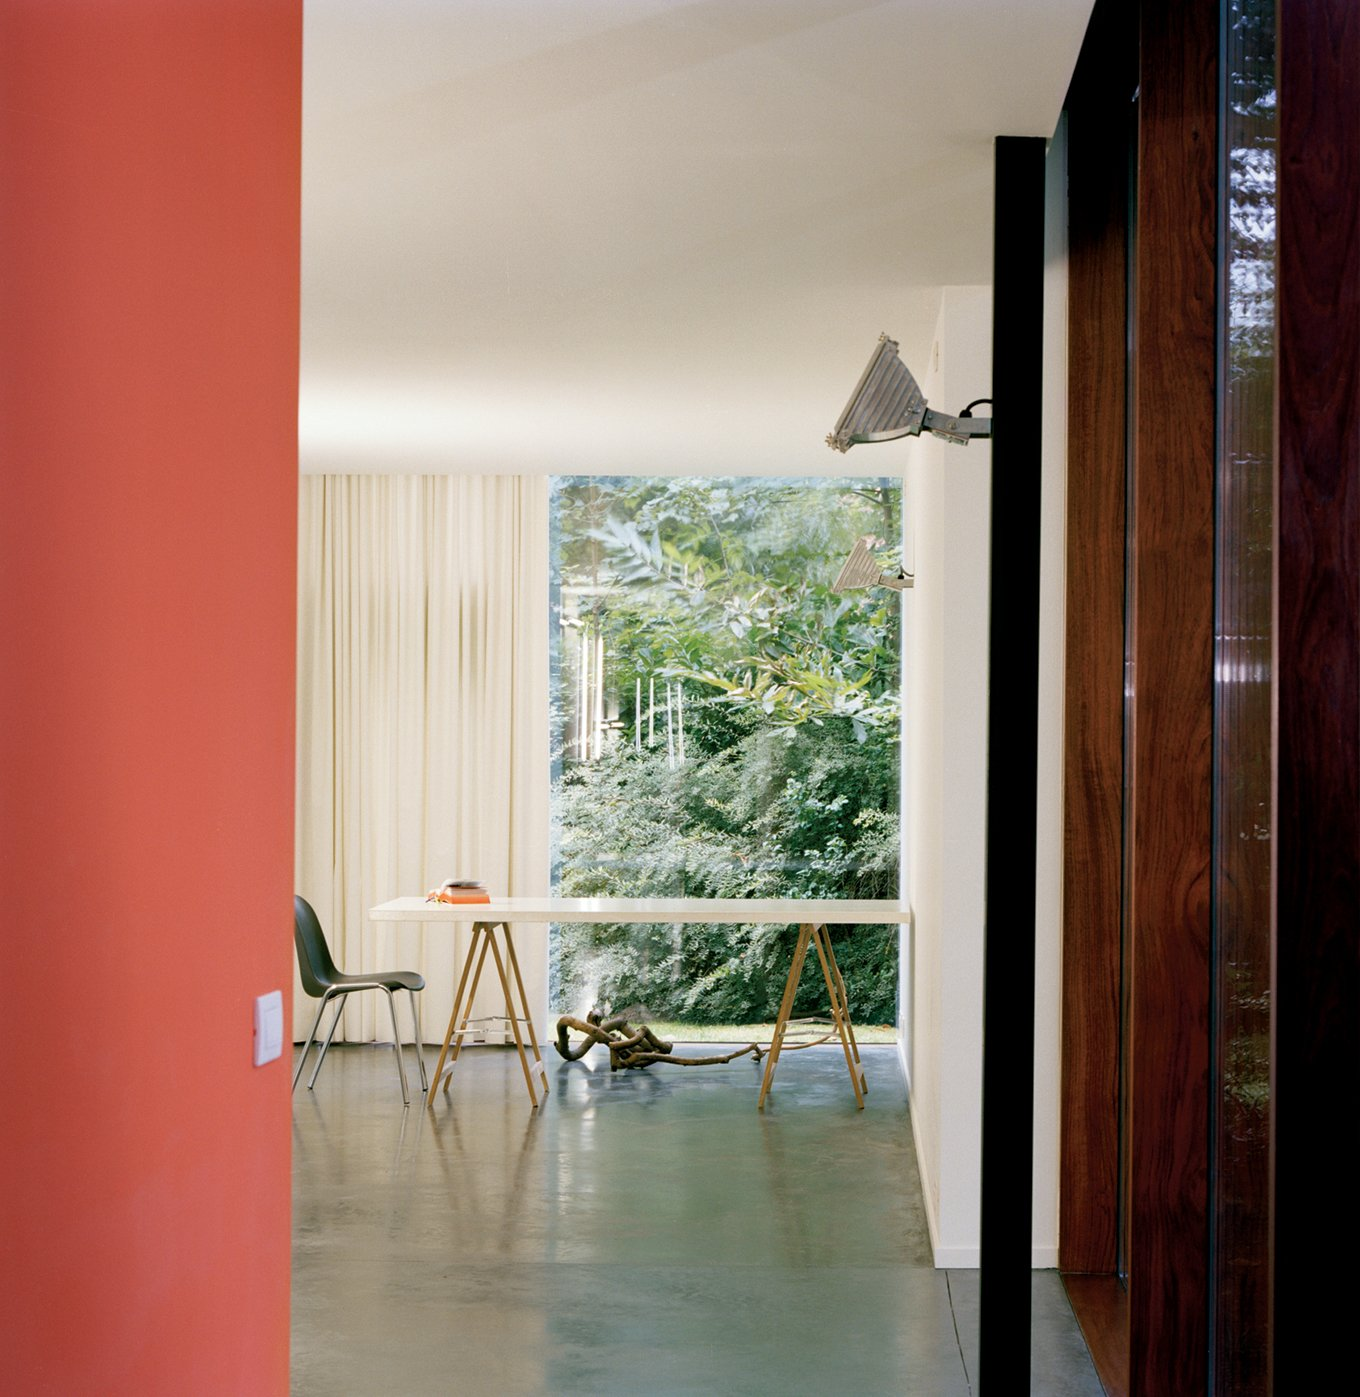 Van Everbroeck's home office occupies the end of one arm of the building. An industrial outdoor light fixture is mounted on a black-painted steel post. The orange of the back wall was chosen to work with the glowing rays of the sunset and the silhouetted, dancing shadows of leaves. Tagged: Office, Concrete Floor, Study, Desk, and Chair.  Best Photos from The Tree of Ghent